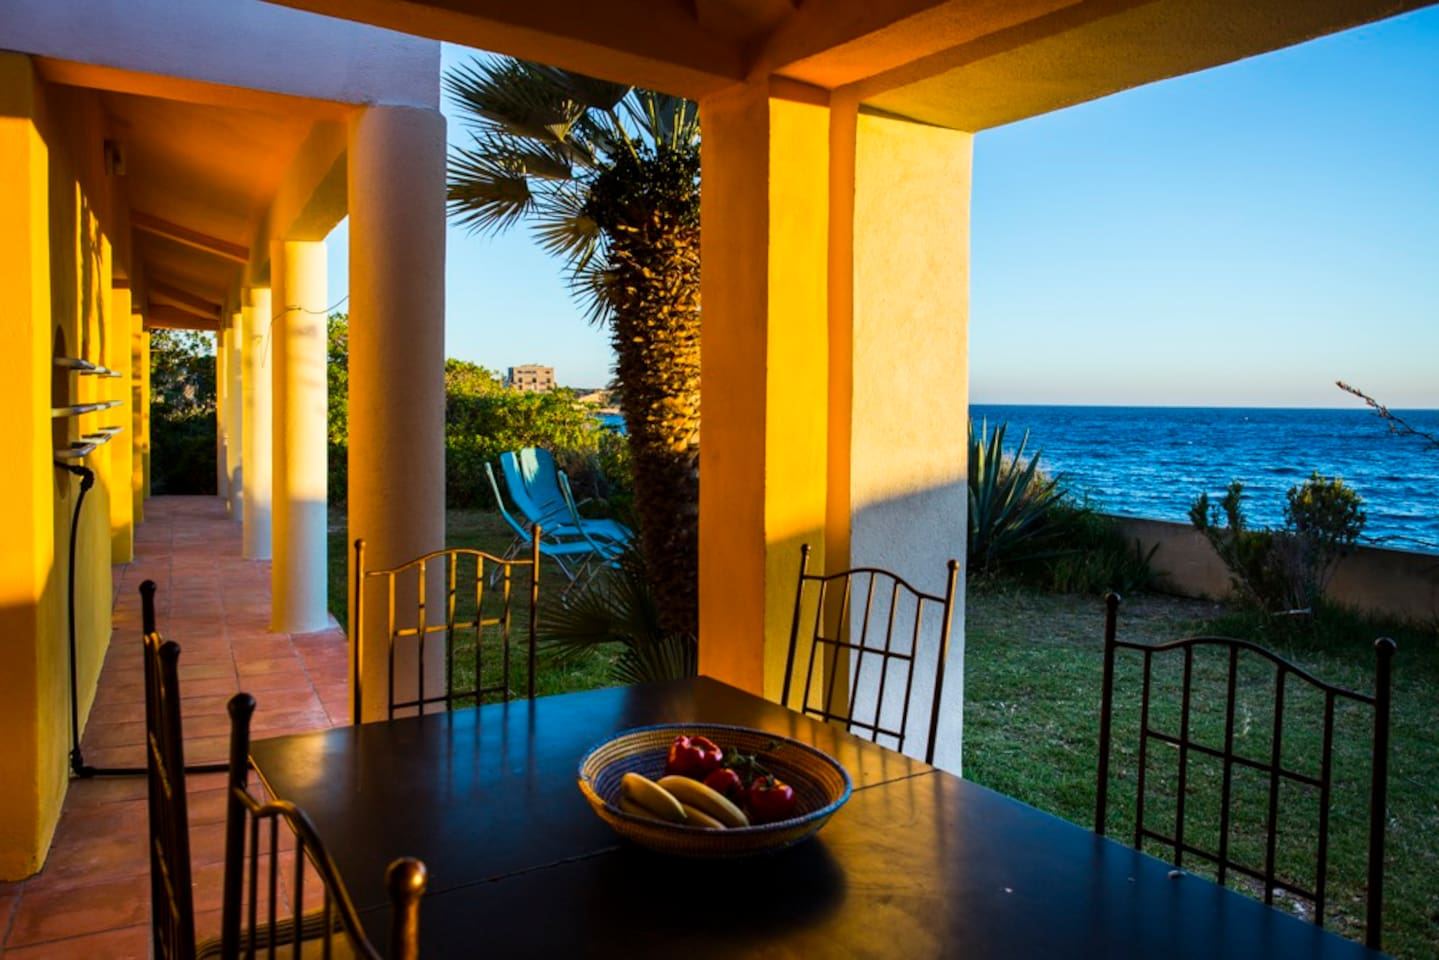 Second table in the garden with sea view with sun/rain protection.